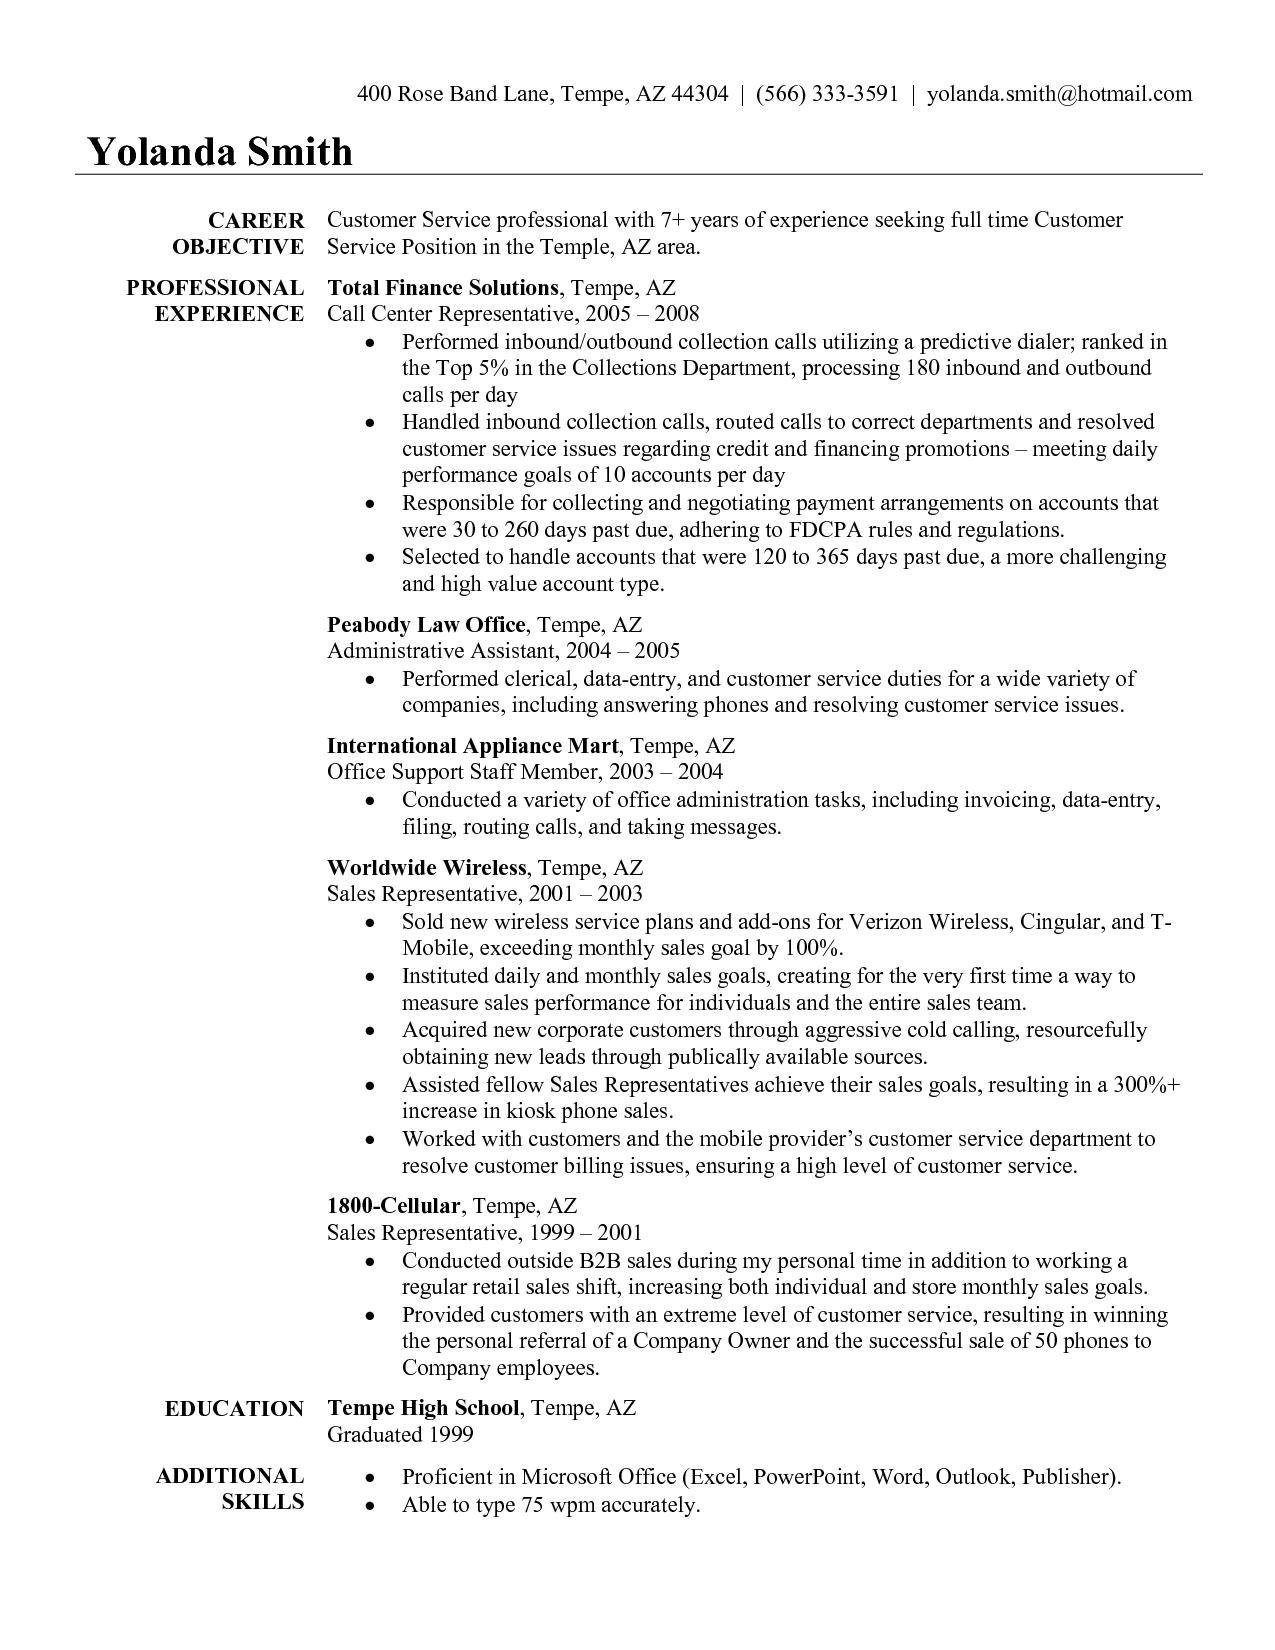 Resume Objective Customer Service Amusing Traffic Customer Resume Examplescustomer Service Resume Examples .